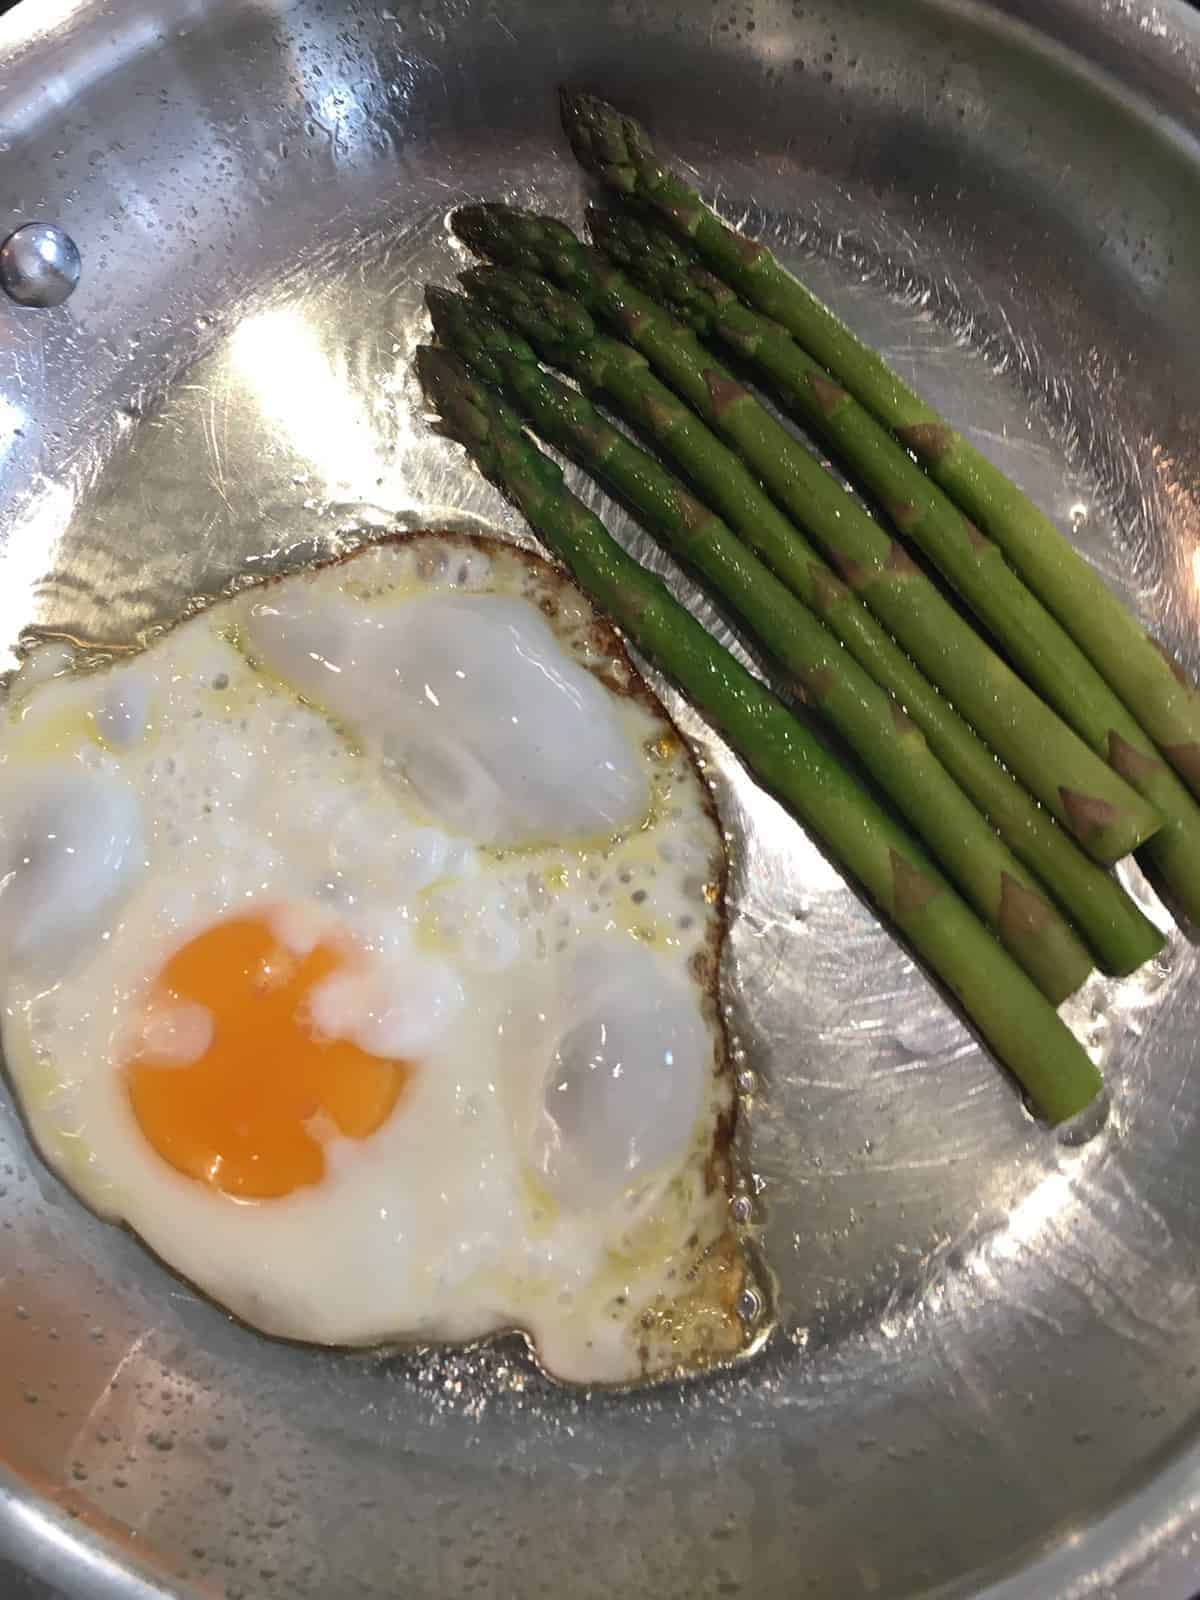 A sunny side up egg and six asparagus spears frying in ghee in a stainless steel skillet